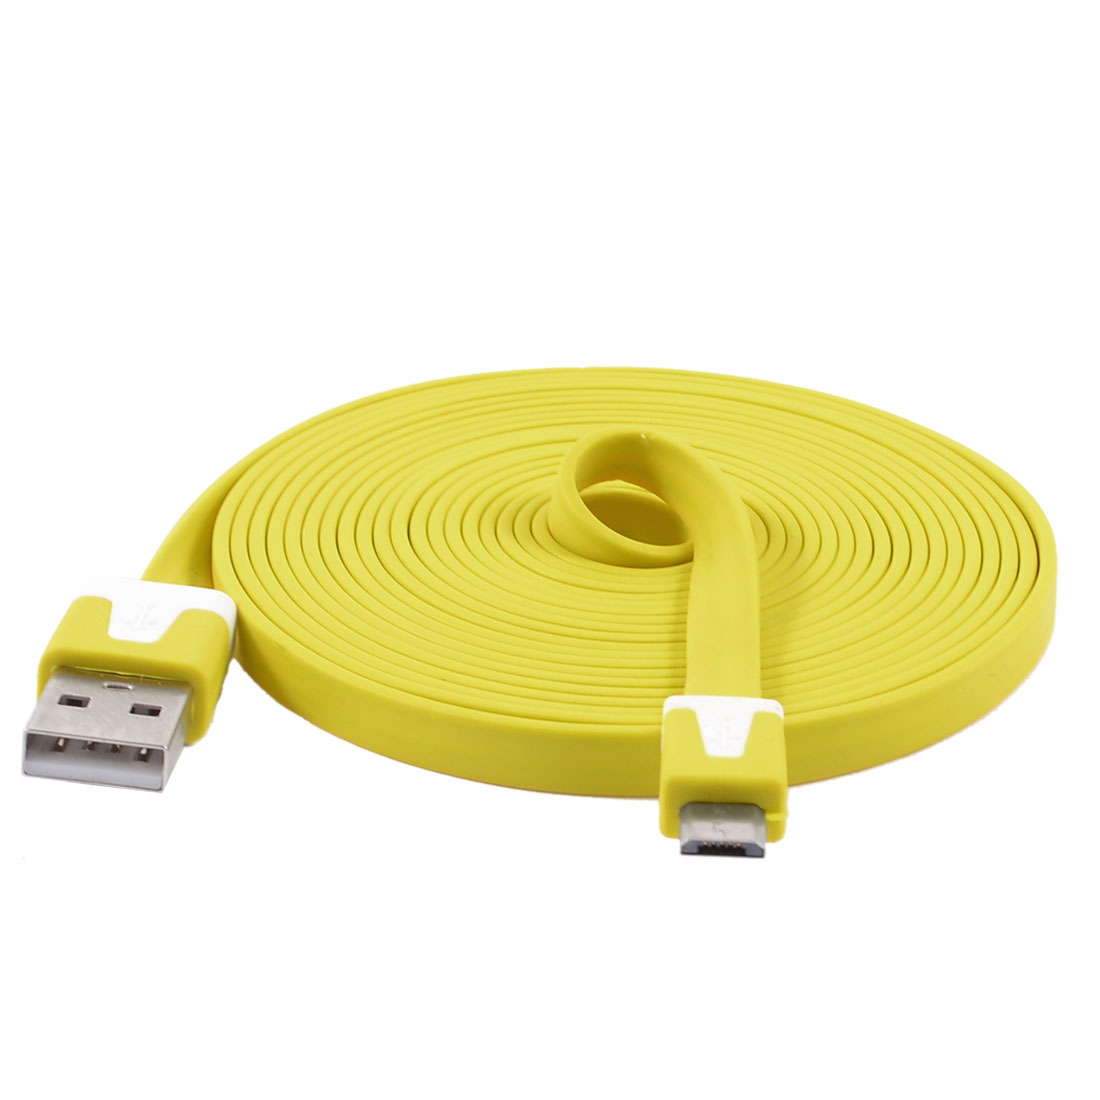 Yellow USB 2.0 to Micro USB 5 Pin Flat Data Charging Cable 3 Meters for HTC